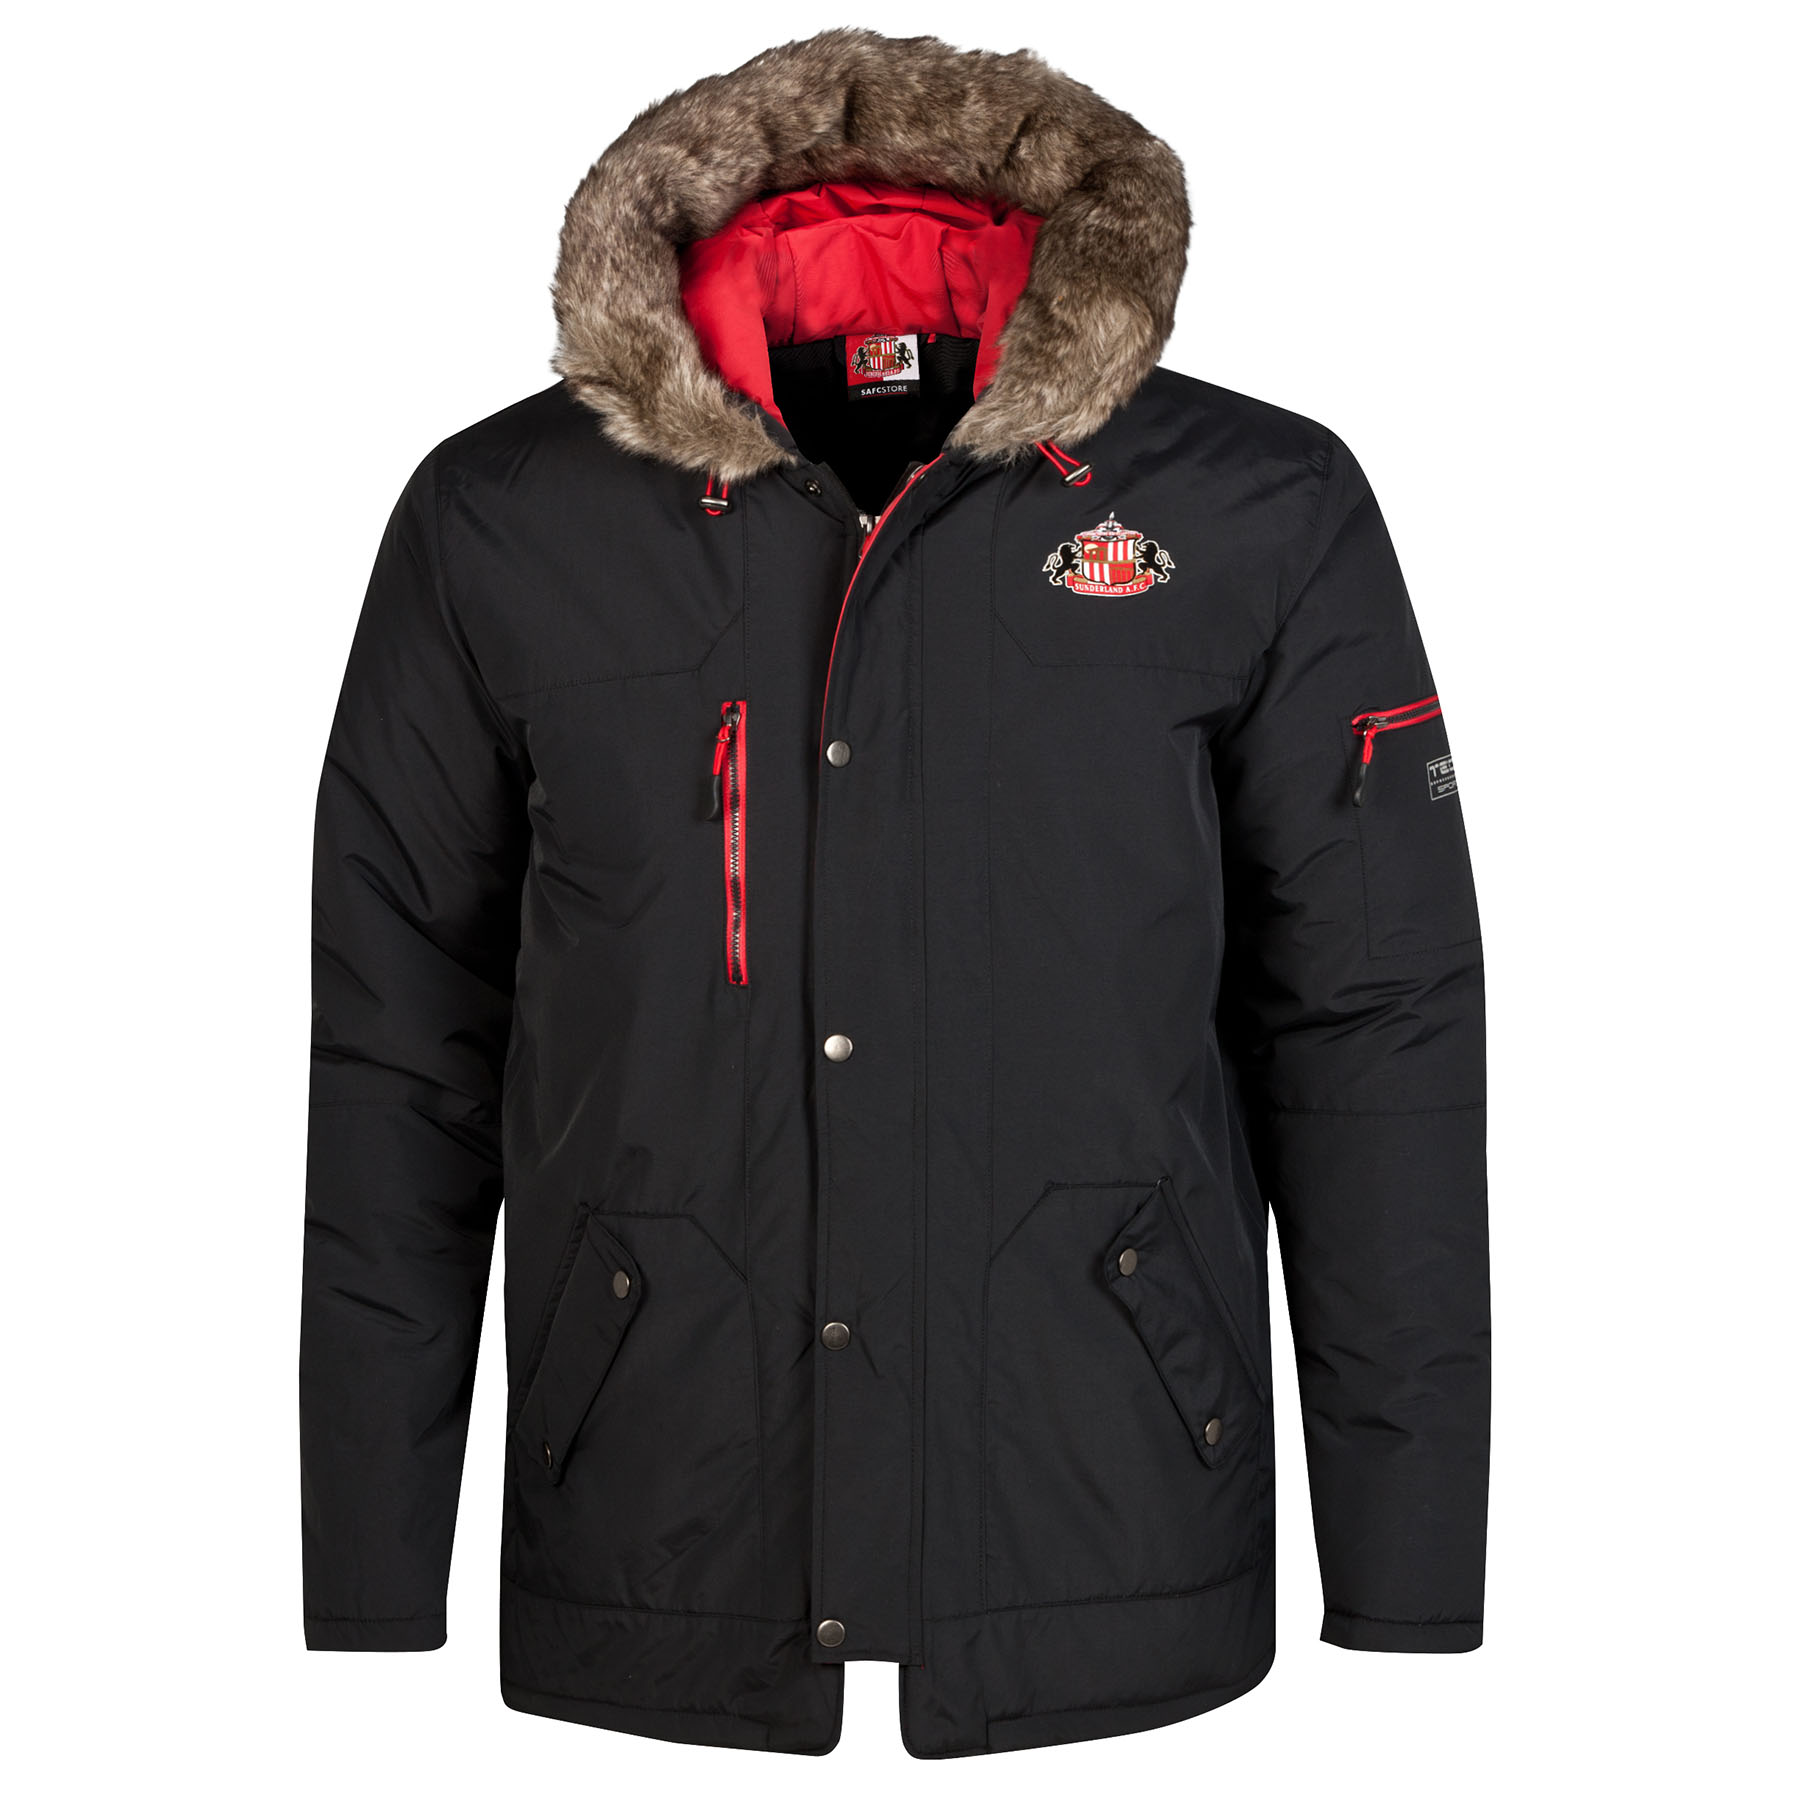 Sunderland Performance Parka Coat - Black -Mens